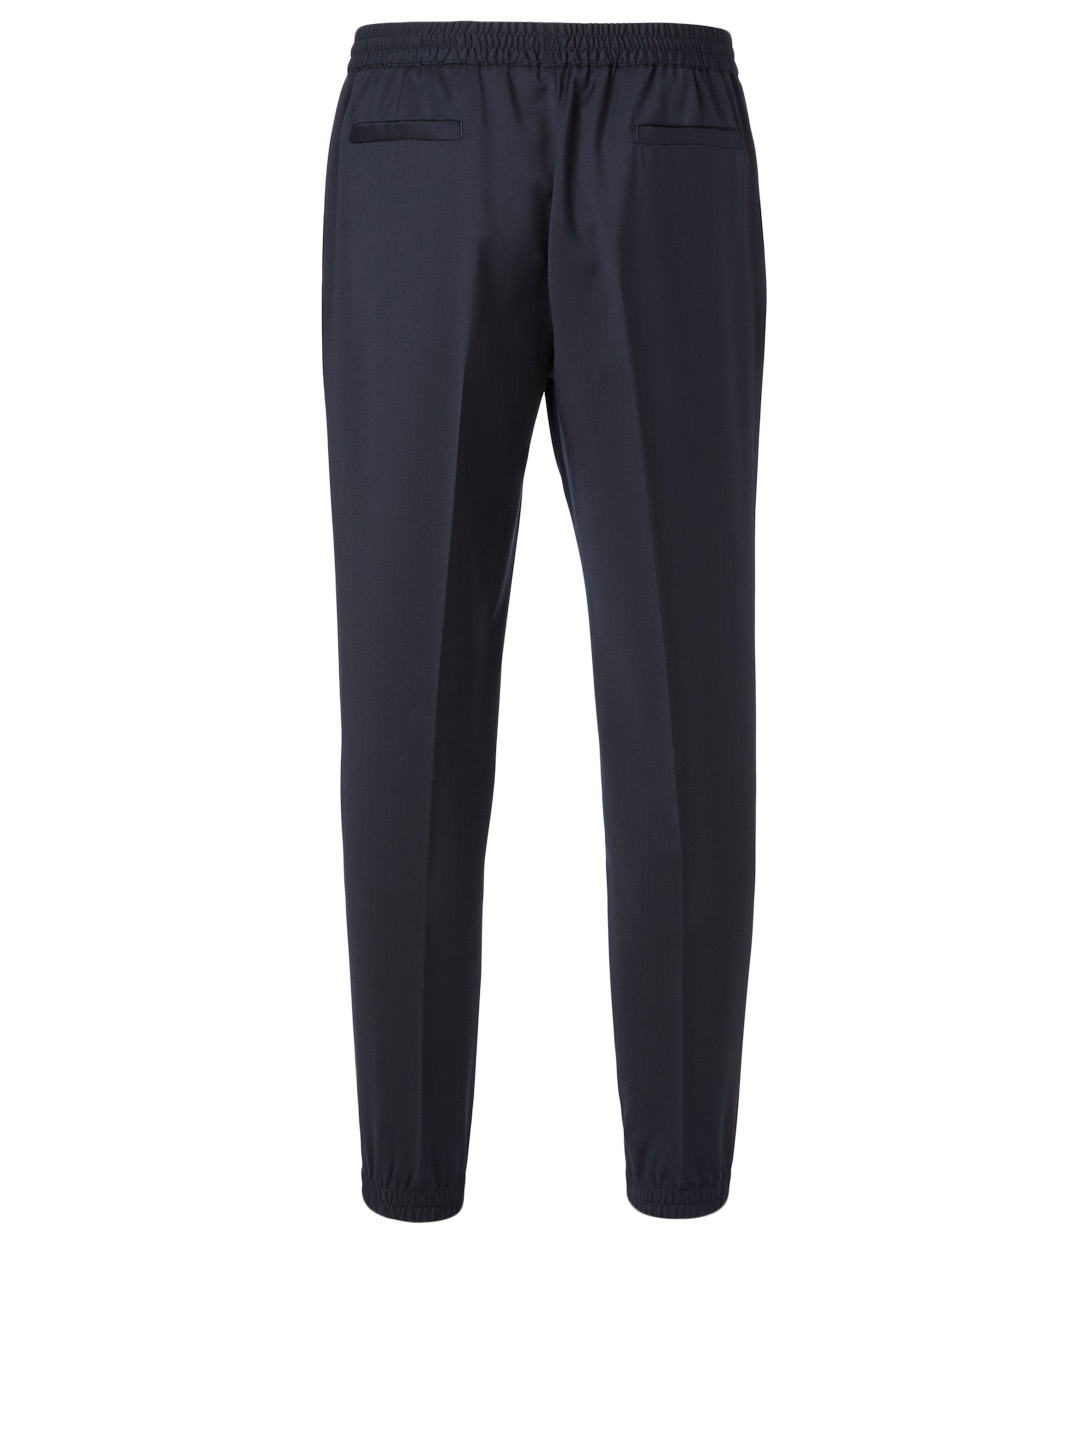 ERMENEGILDO ZEGNA Wool Jogger Pants Men's Blue